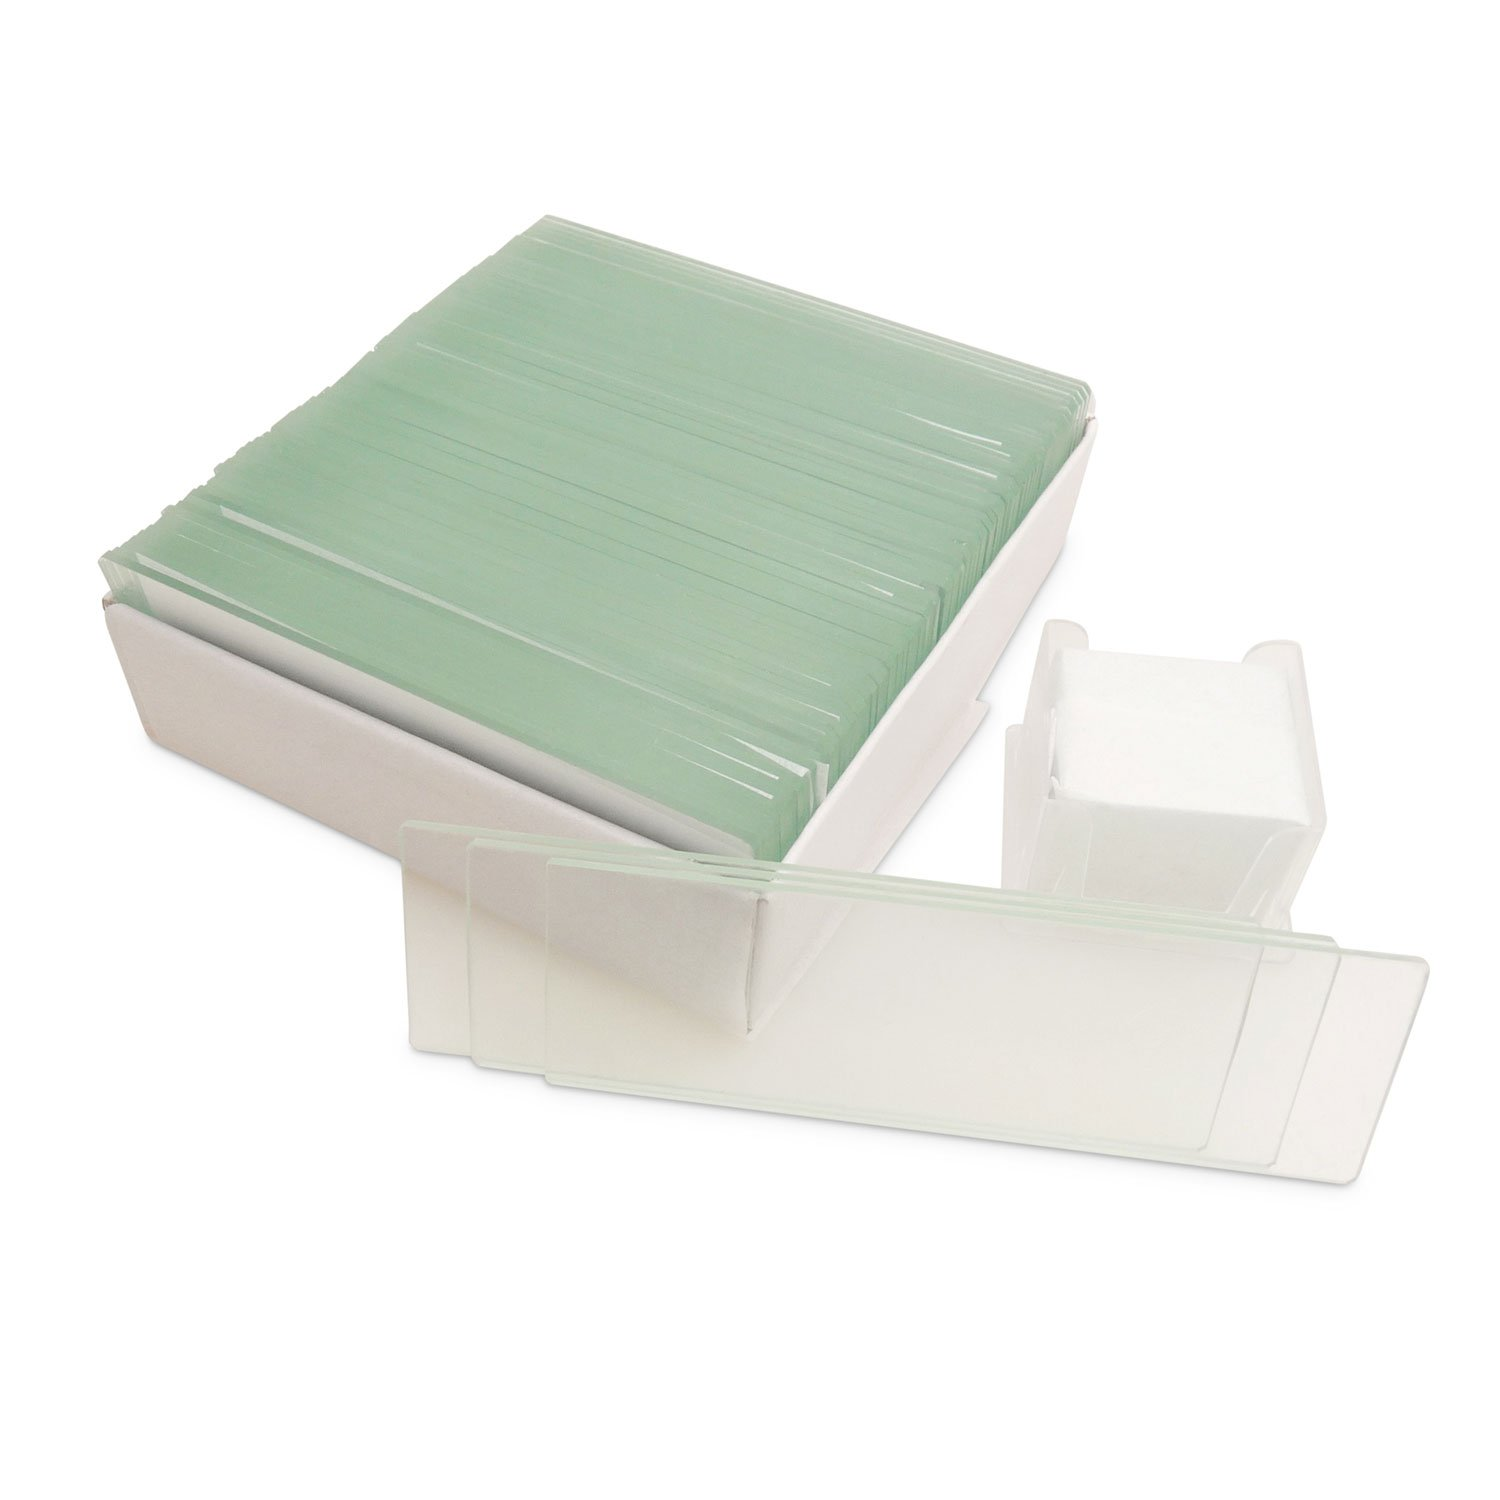 100pcs 22x22mm Square Coverslips Cover Glass 72pcs Pre-Cleaned Blank Microscope Slides with Ground Edges